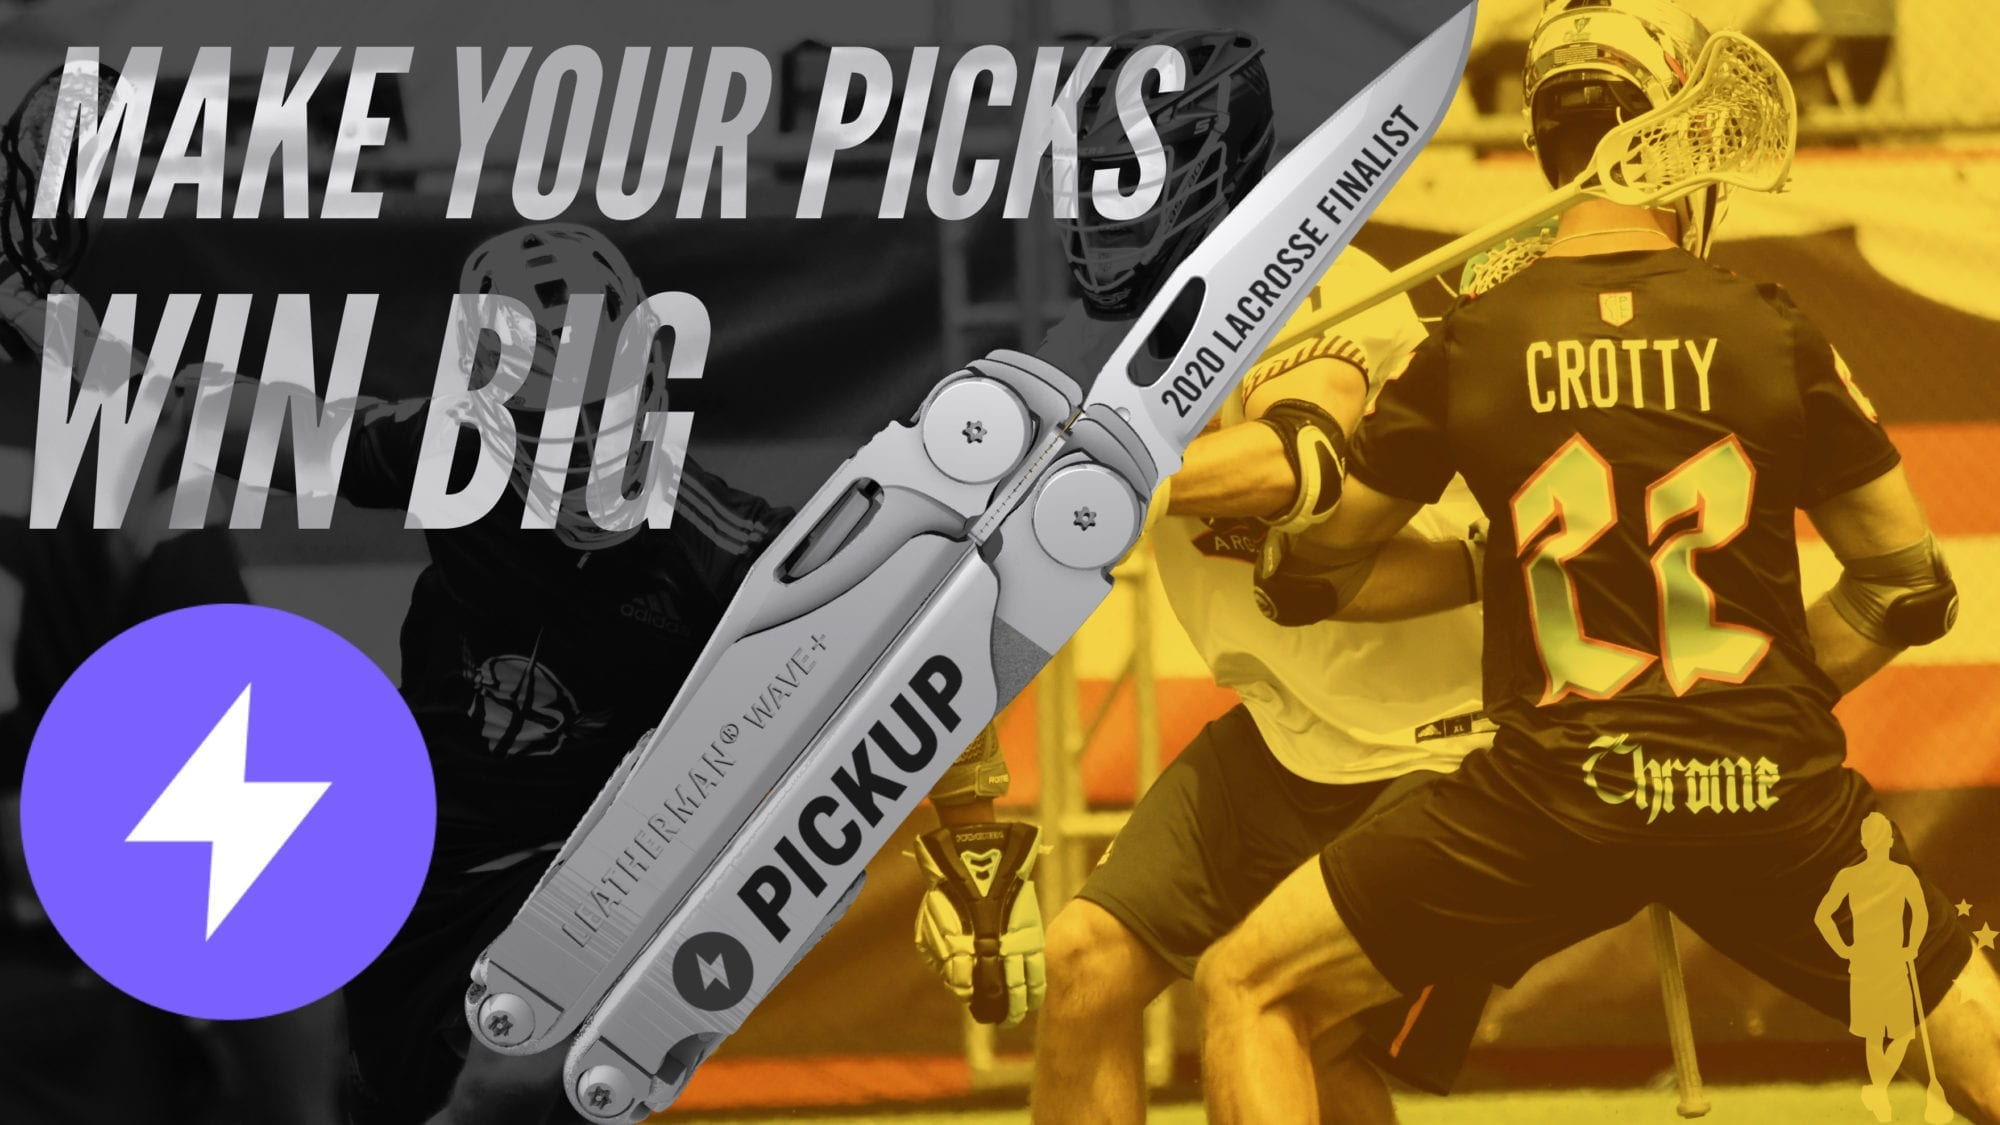 betting on lacrosse without.money - pickup